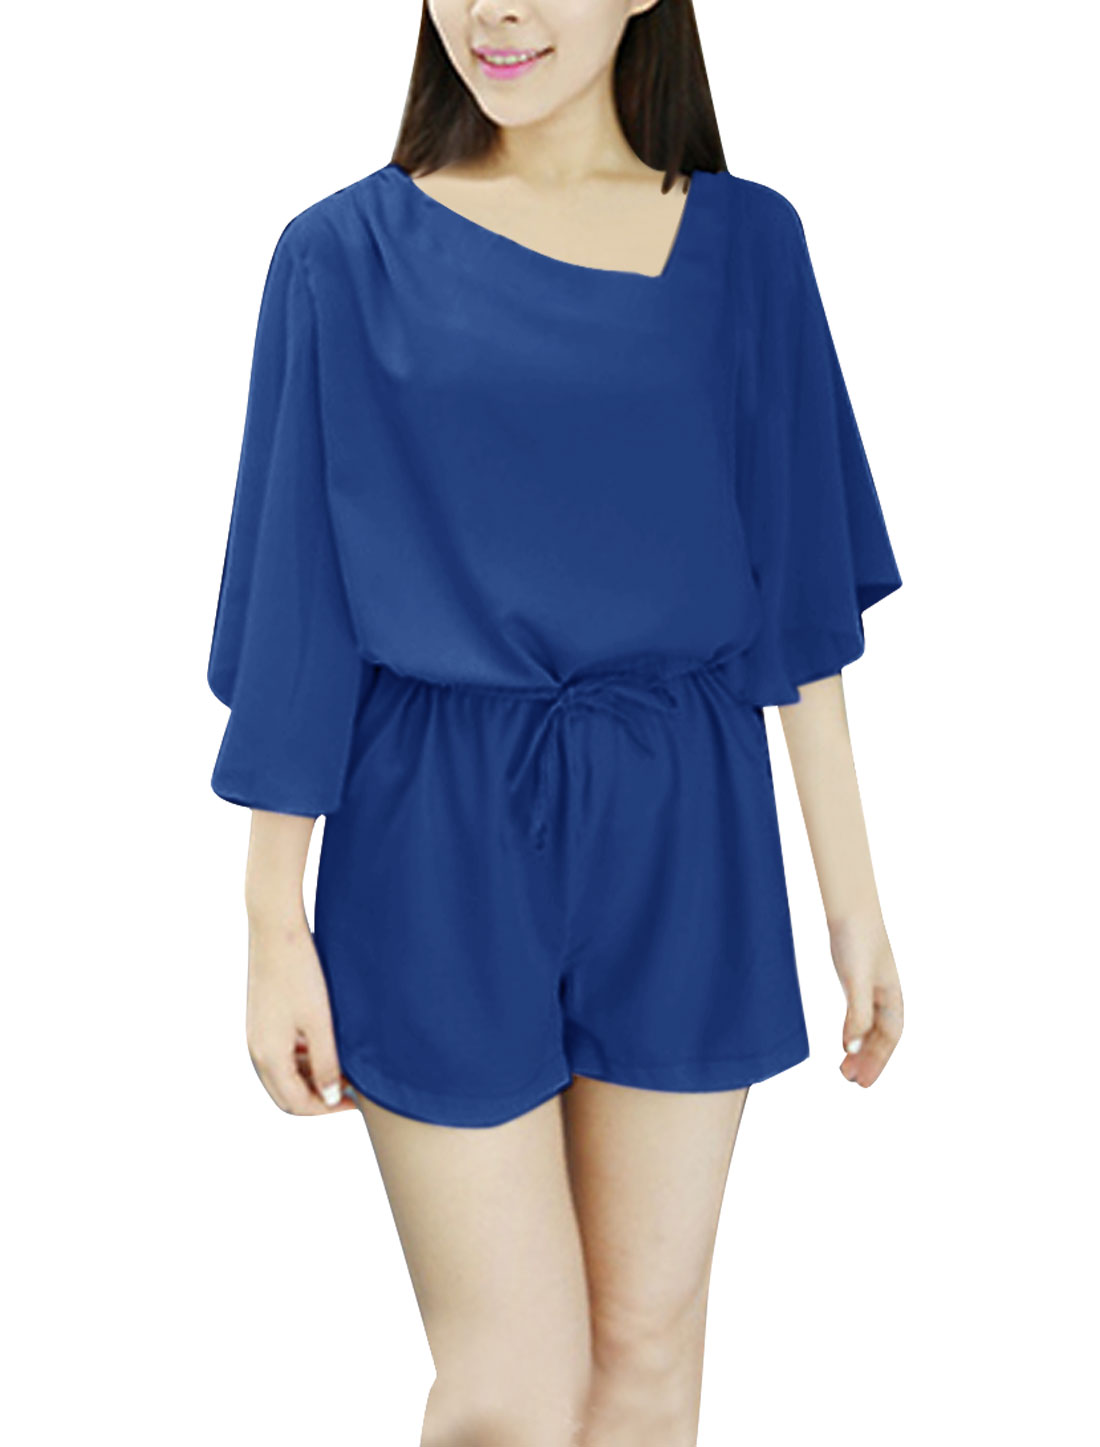 Women Zip Up Drawstring Waist Summer Romper Royal Blue XS